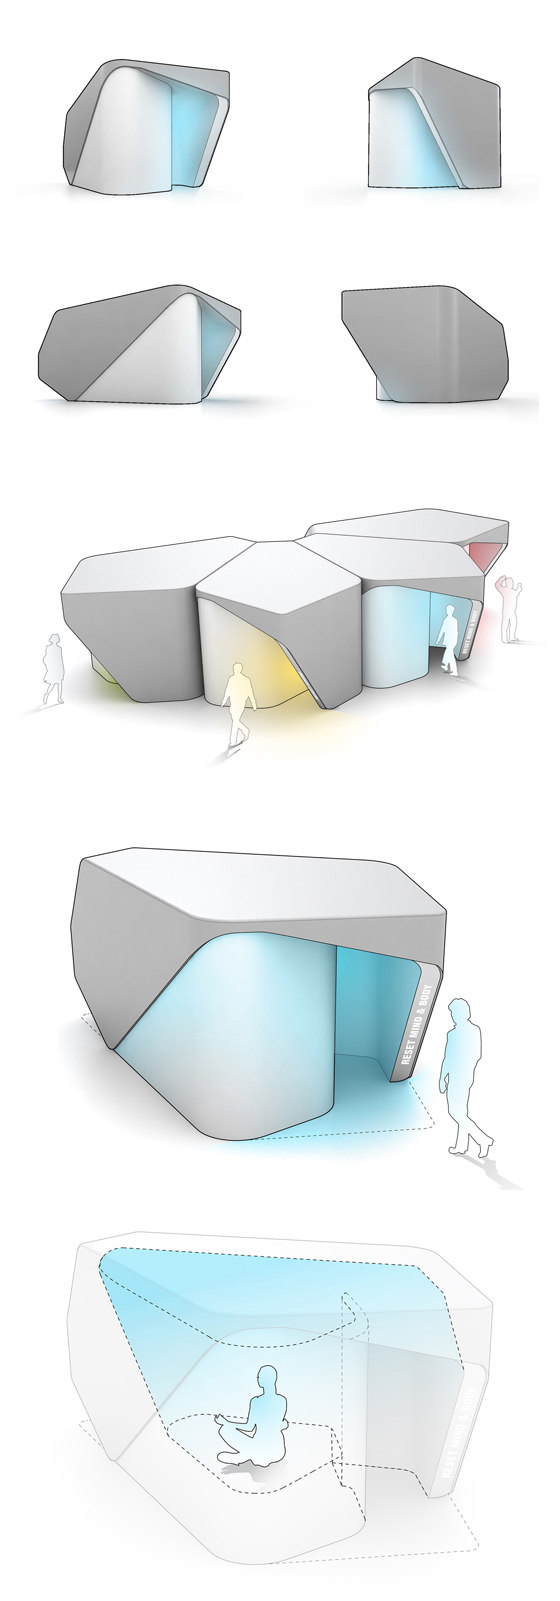 RESET - Stress Free Zone by UNStudio | Temporary structures